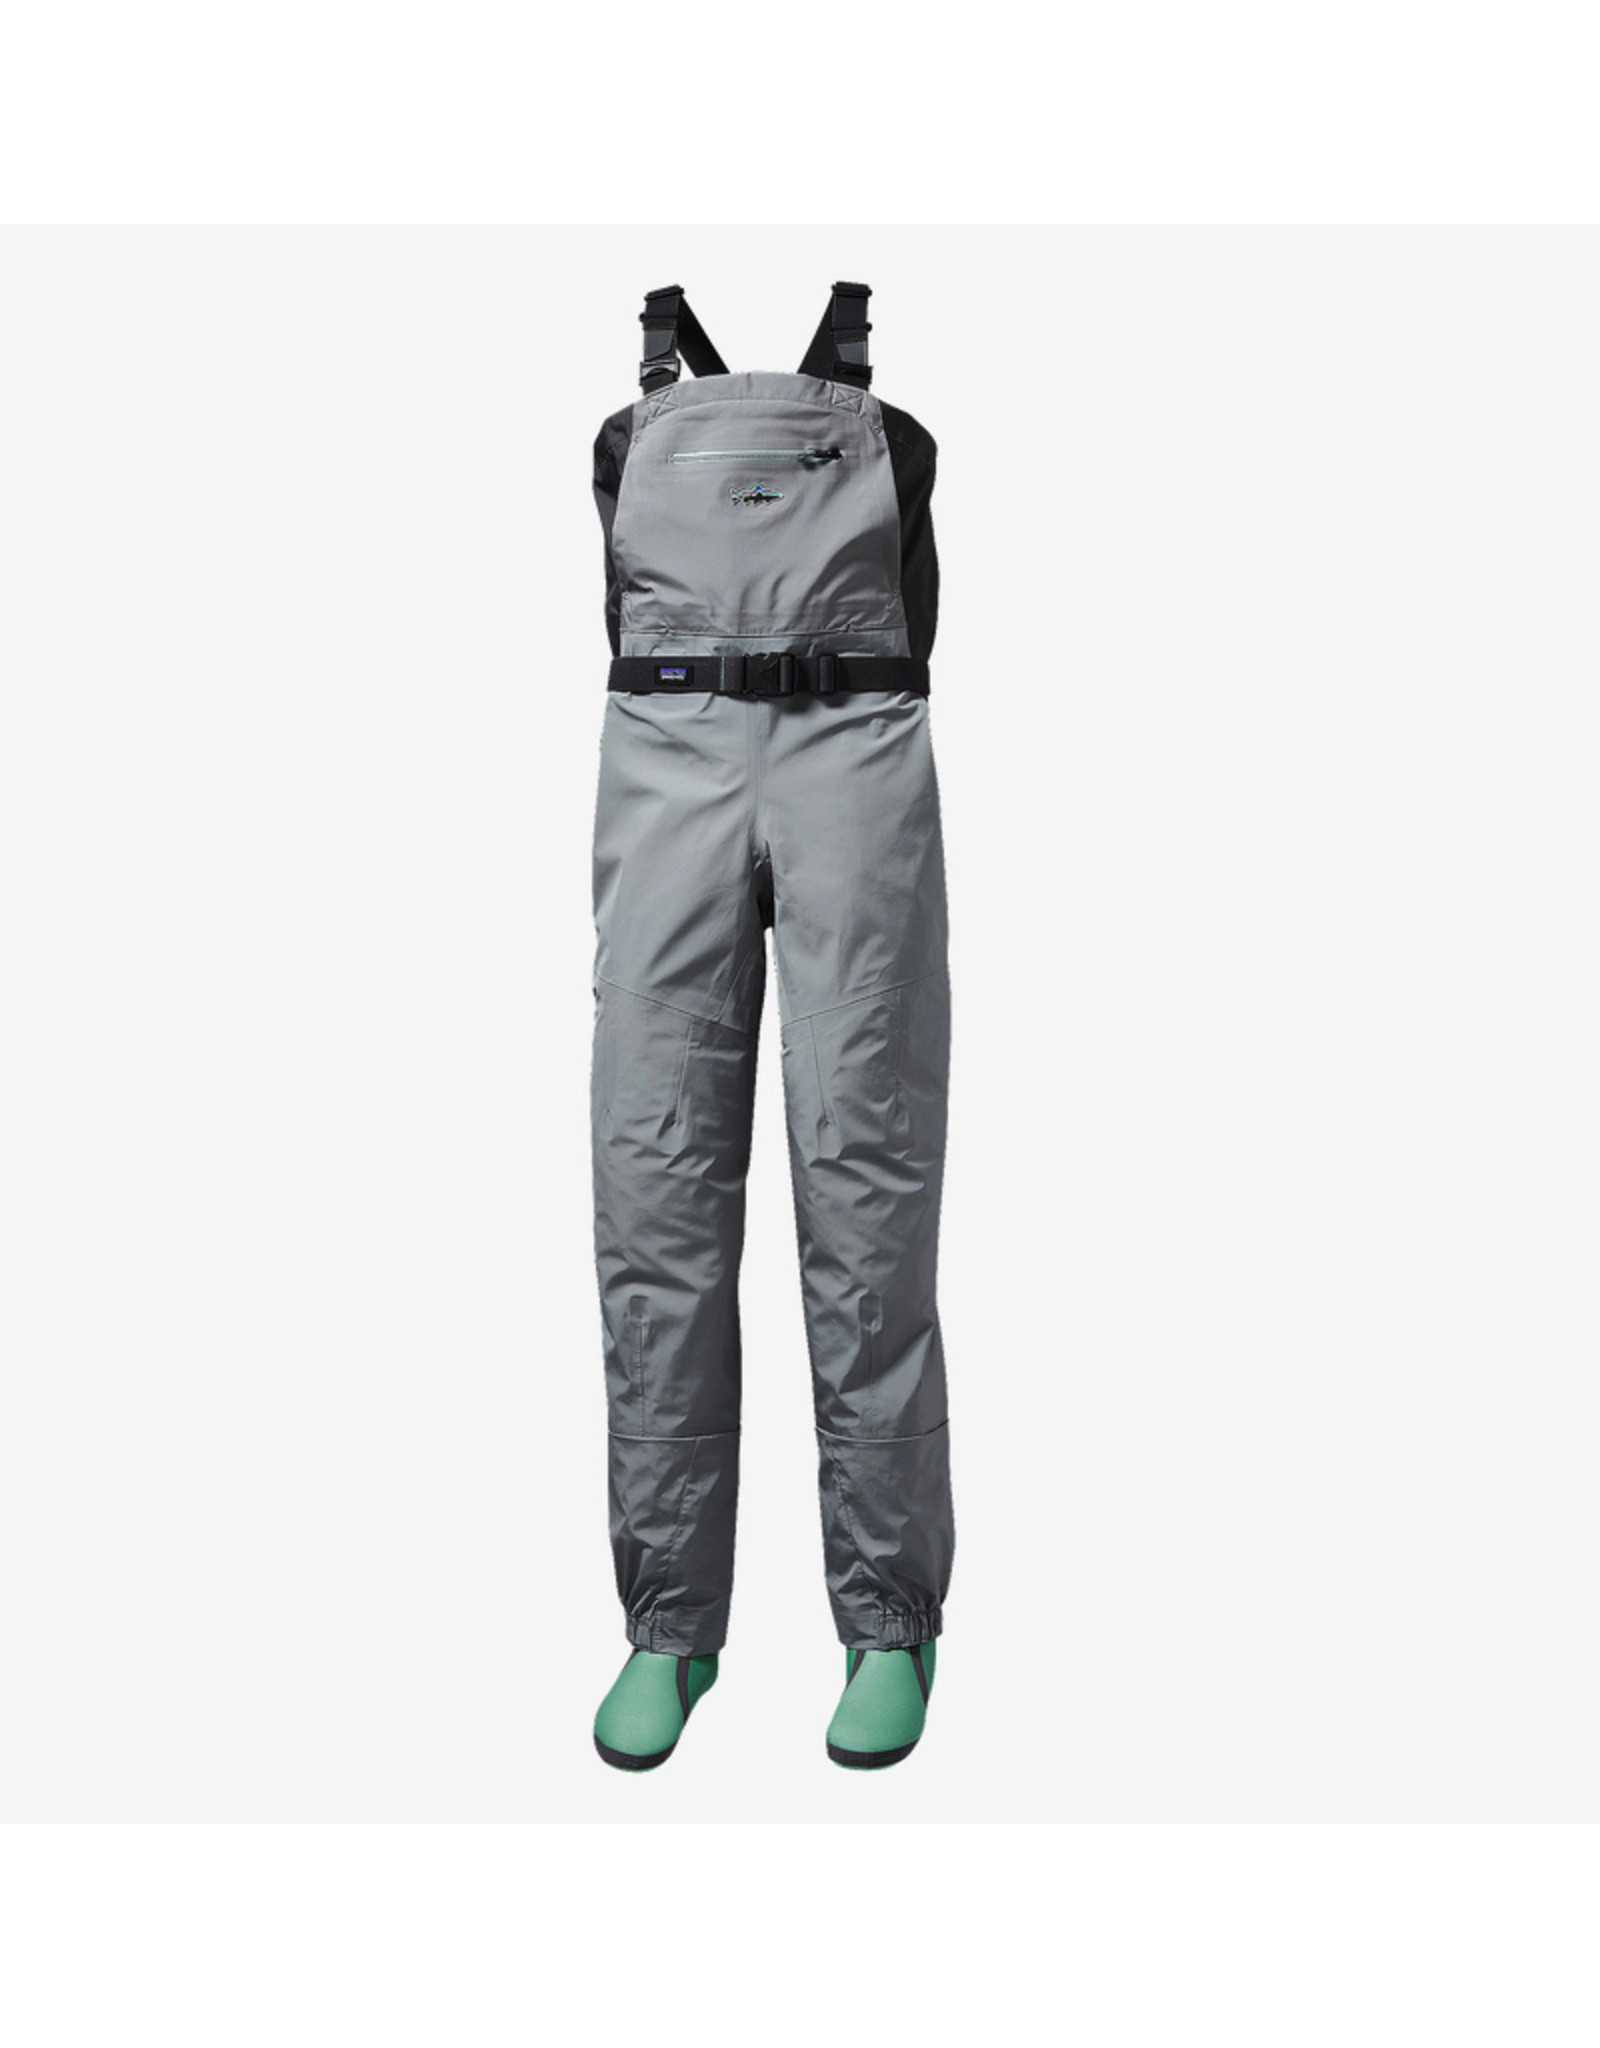 Patagonia Patagonia - Women's Spring River Waders - Regular